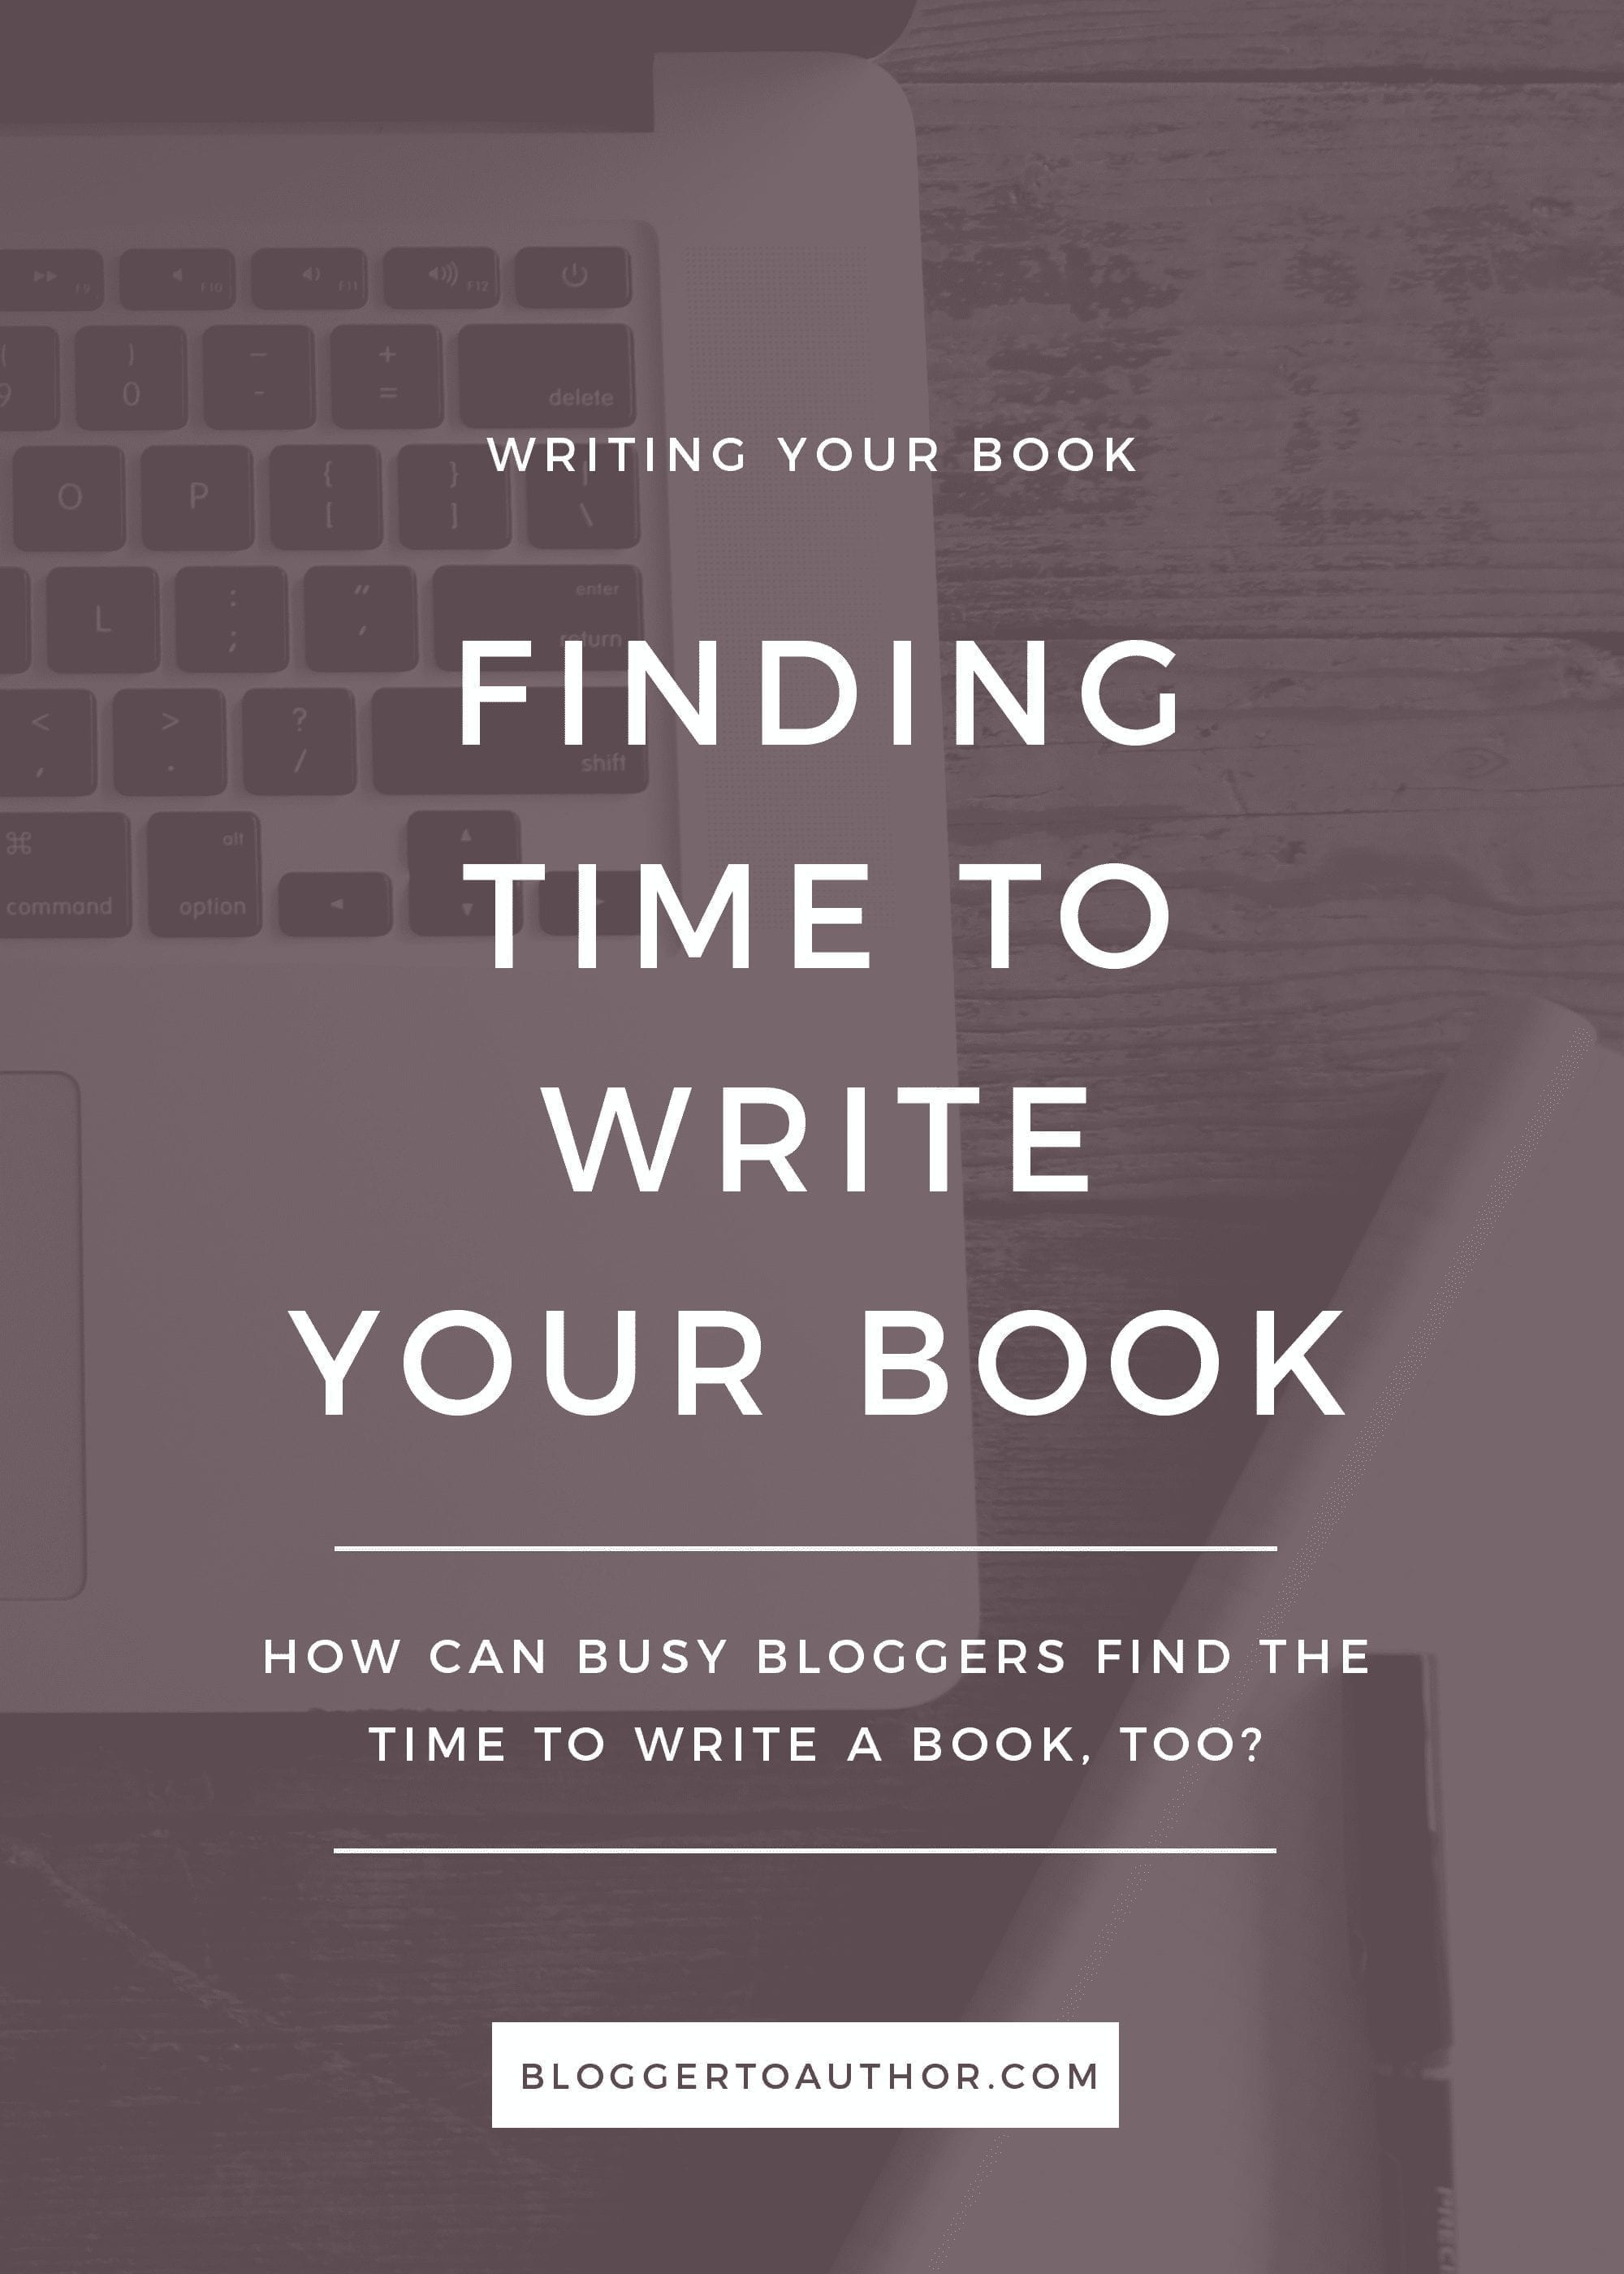 Bloggers, would you love to write a book but think you don't have time? You might be wrong.